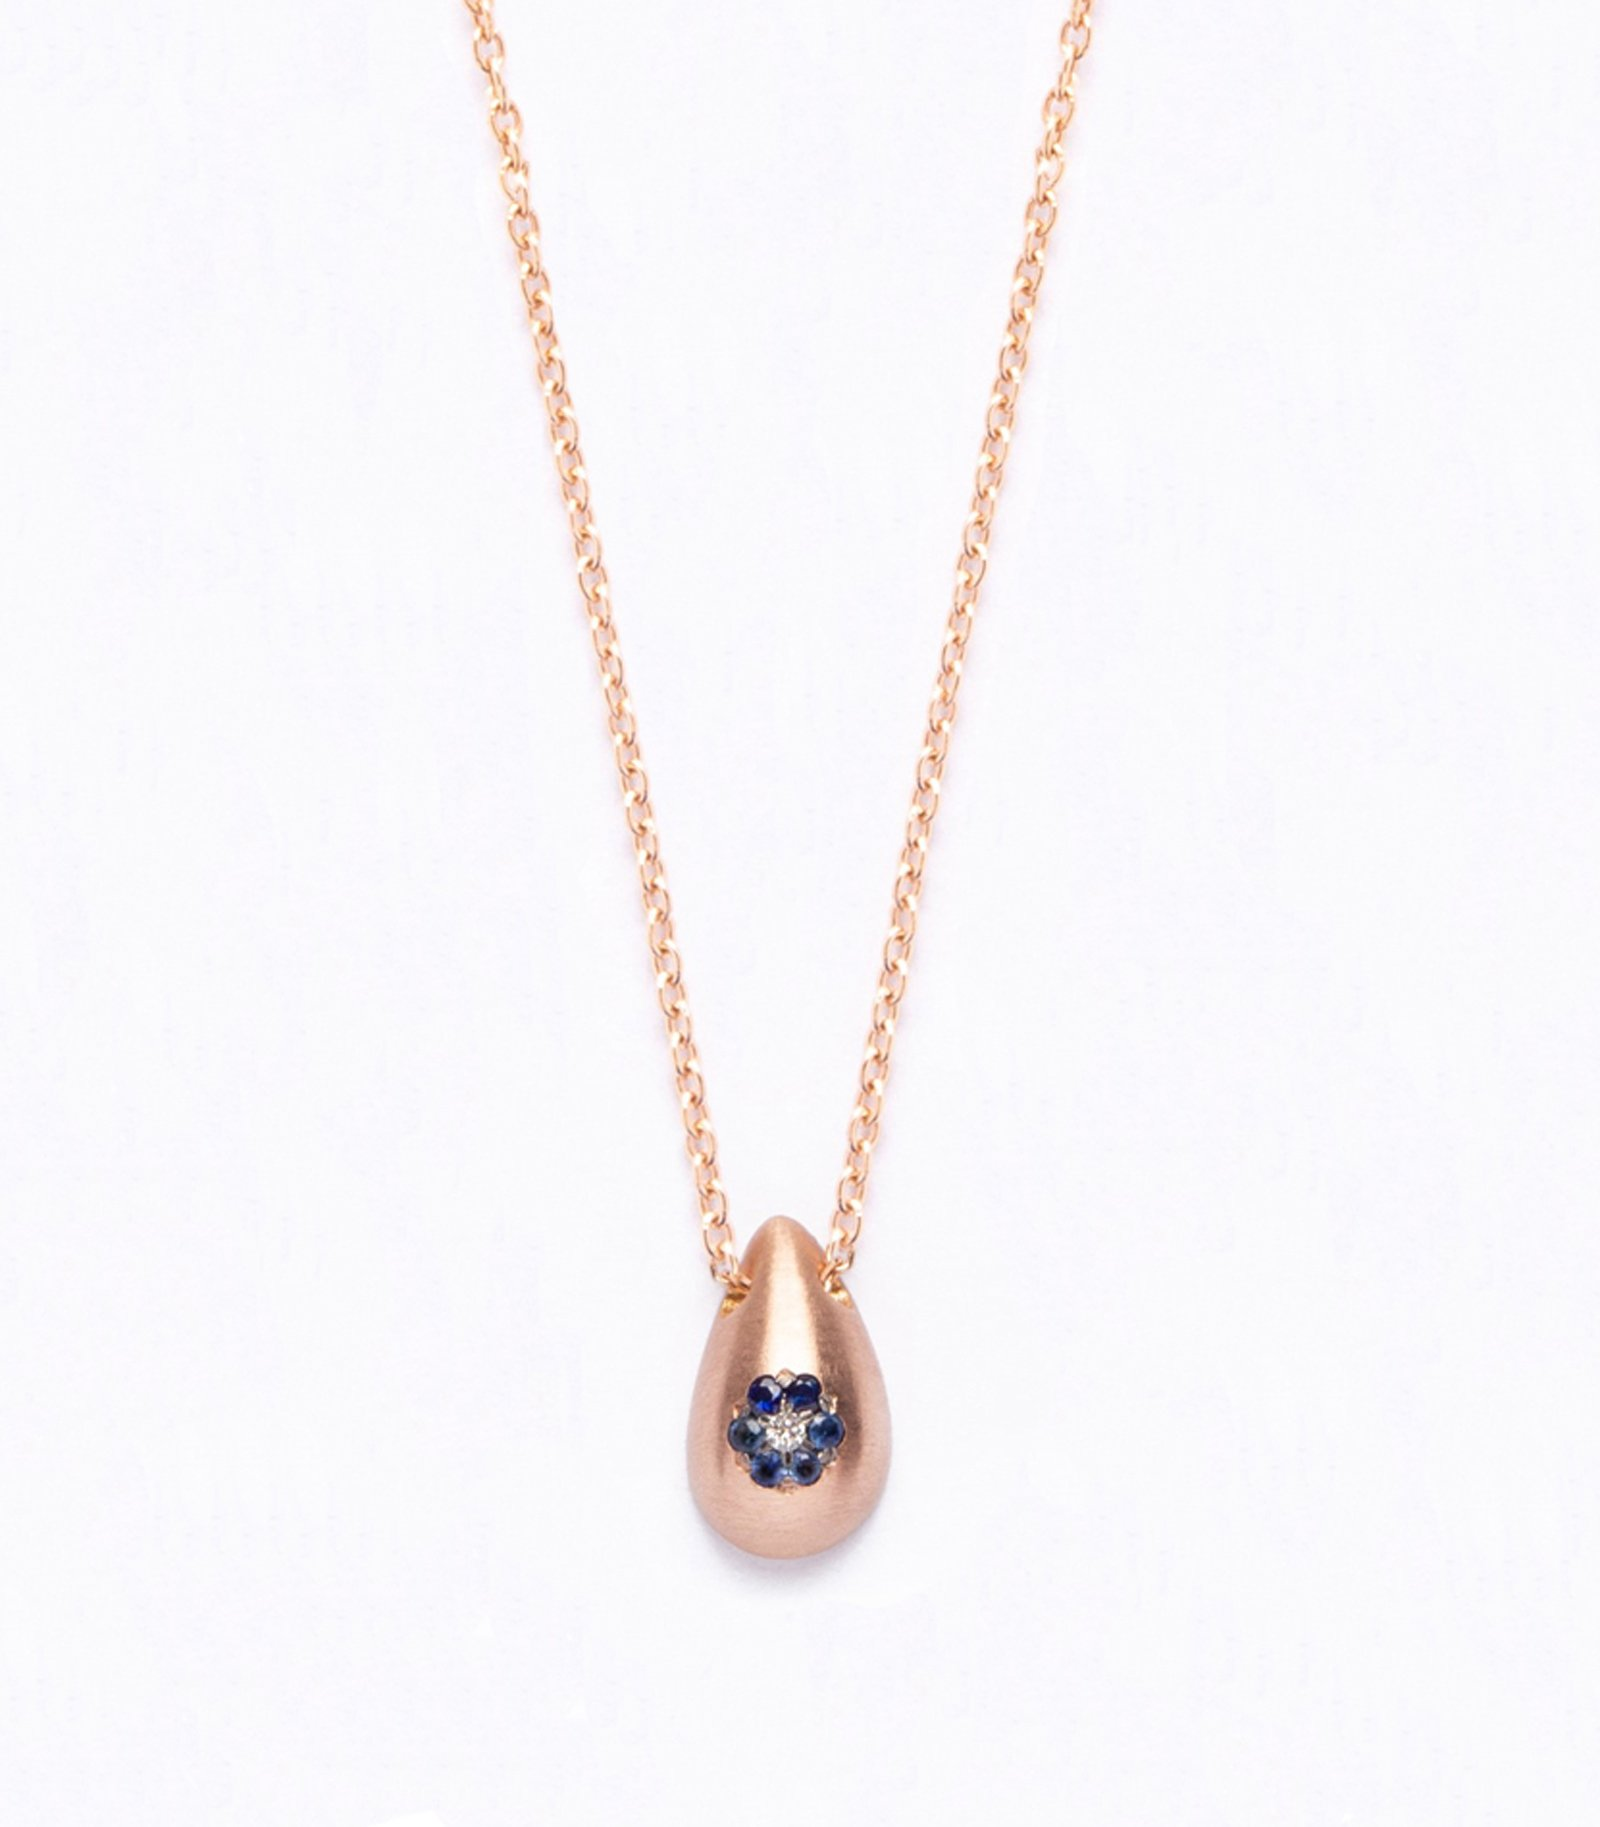 Necklace flower gold with precious stones